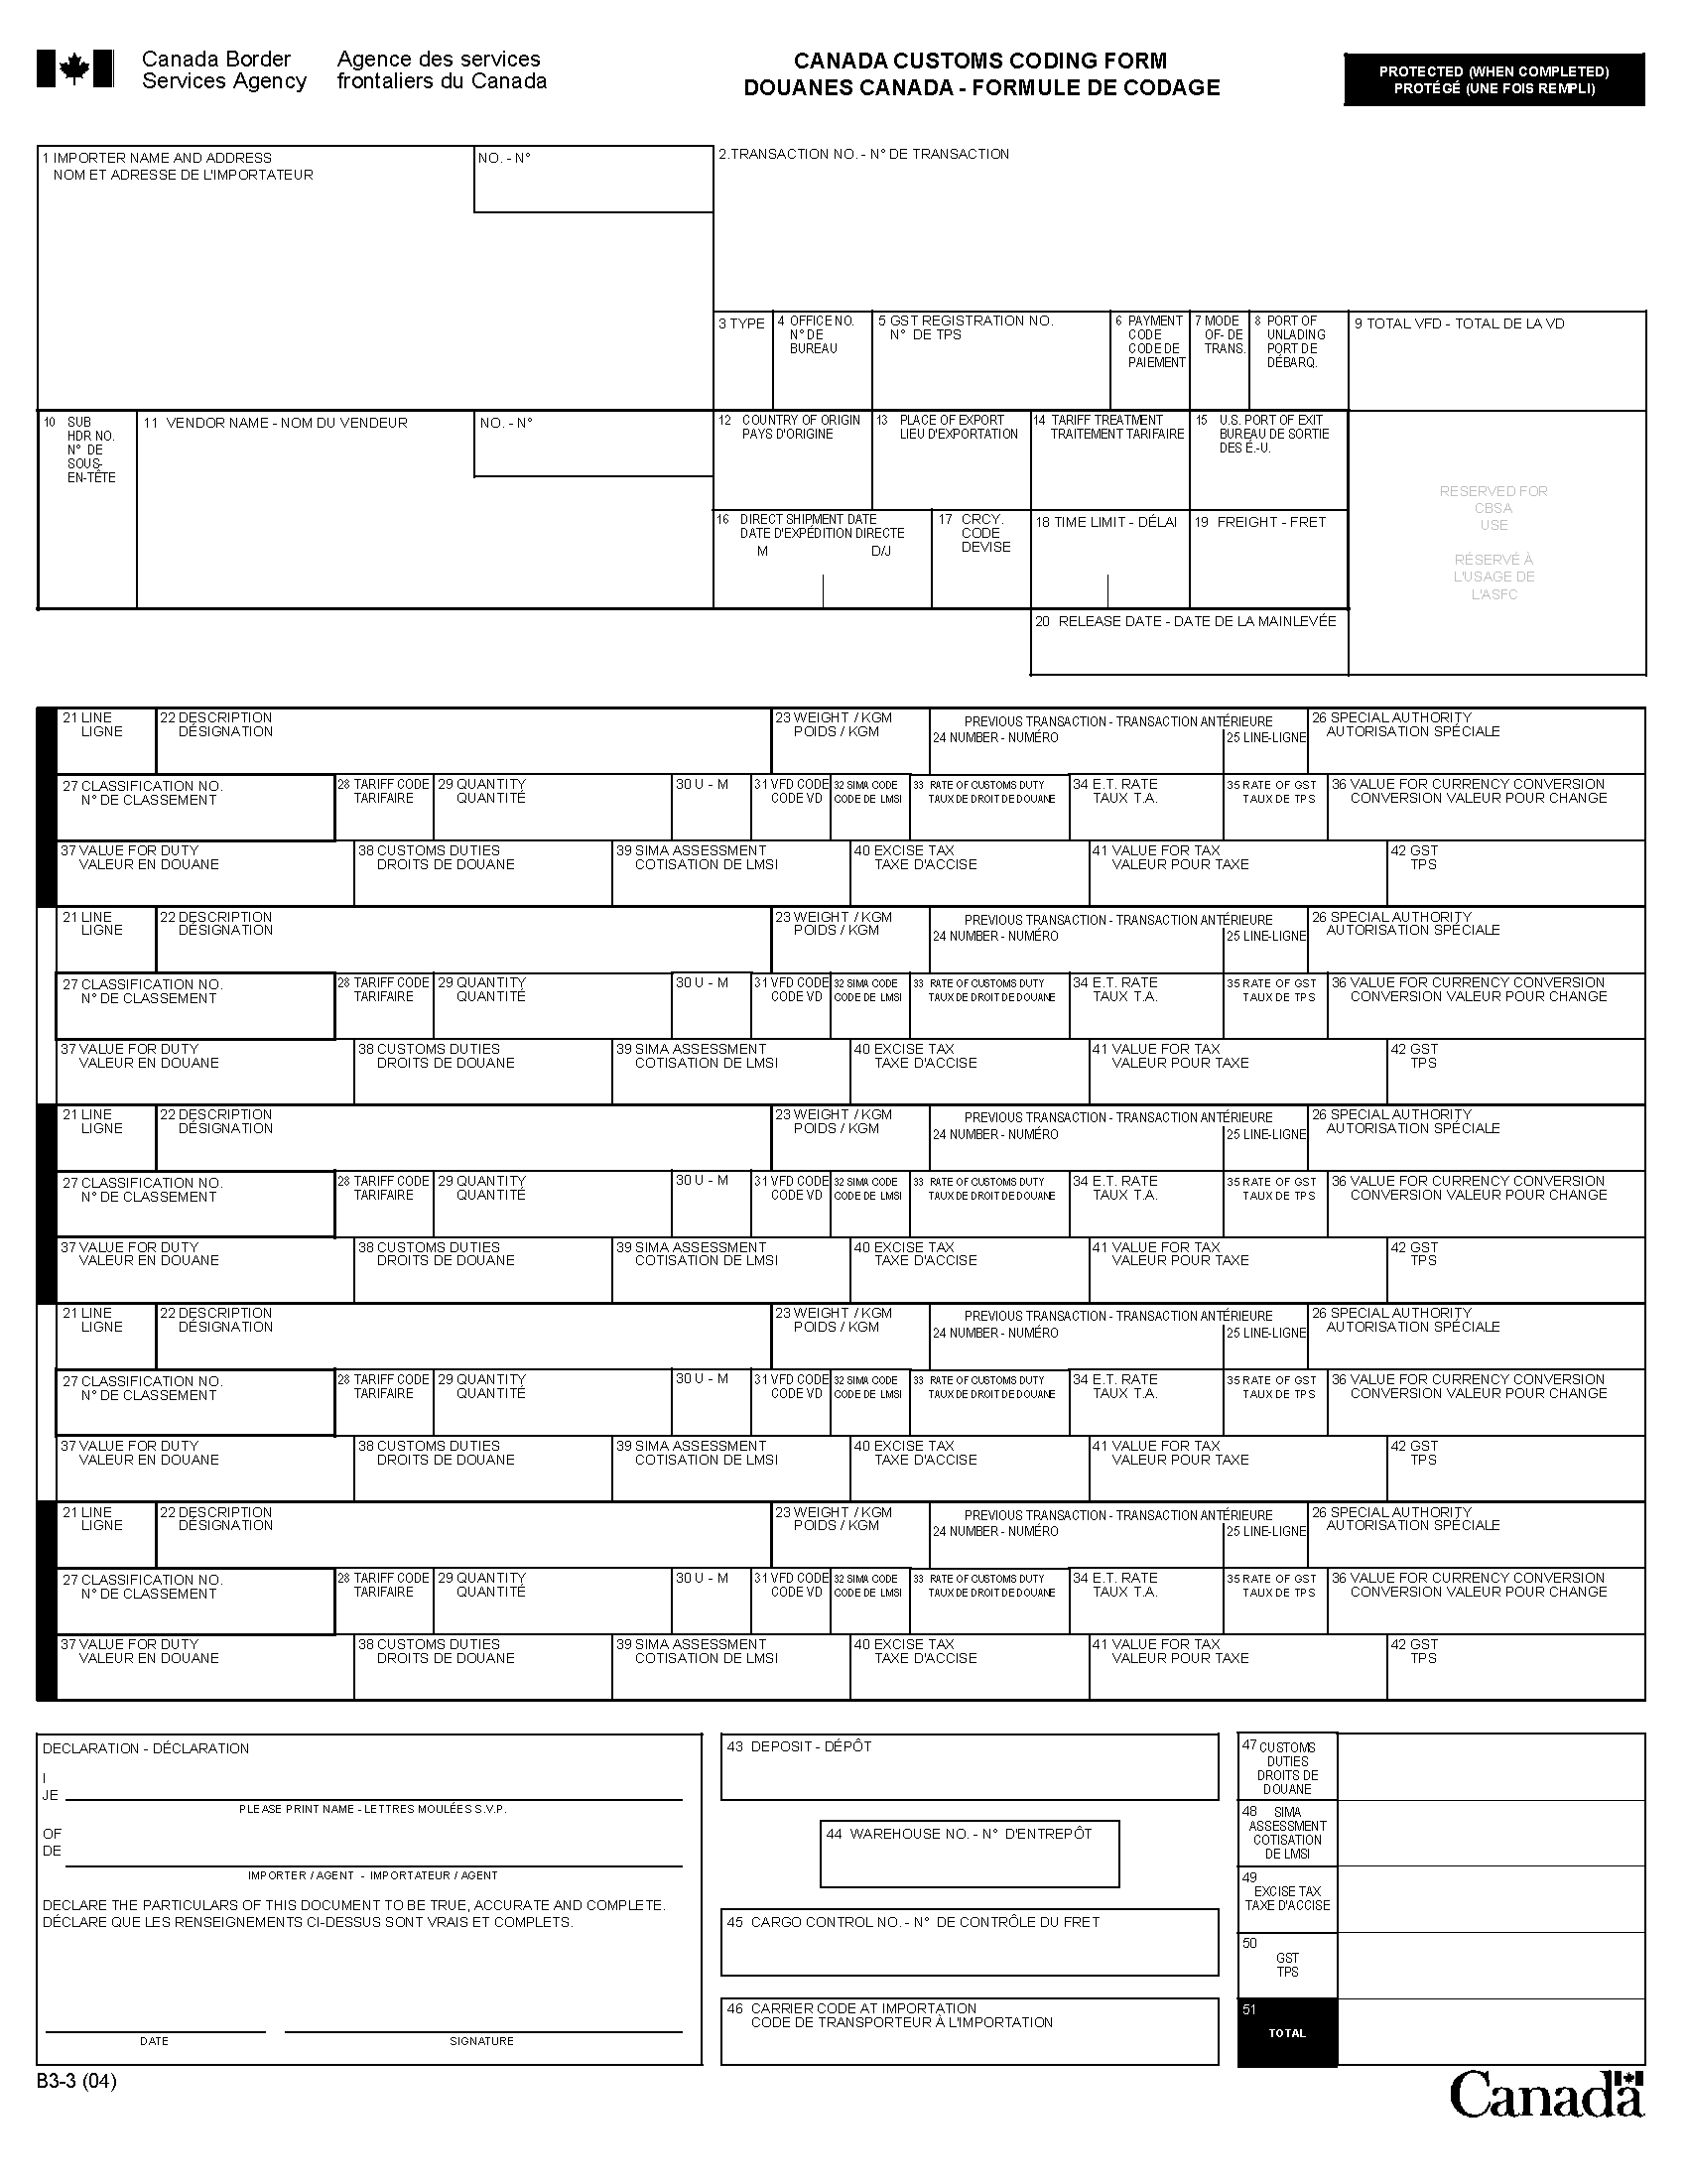 memorandum d17 1 5 registration accounting and payment for canadian custom invoice